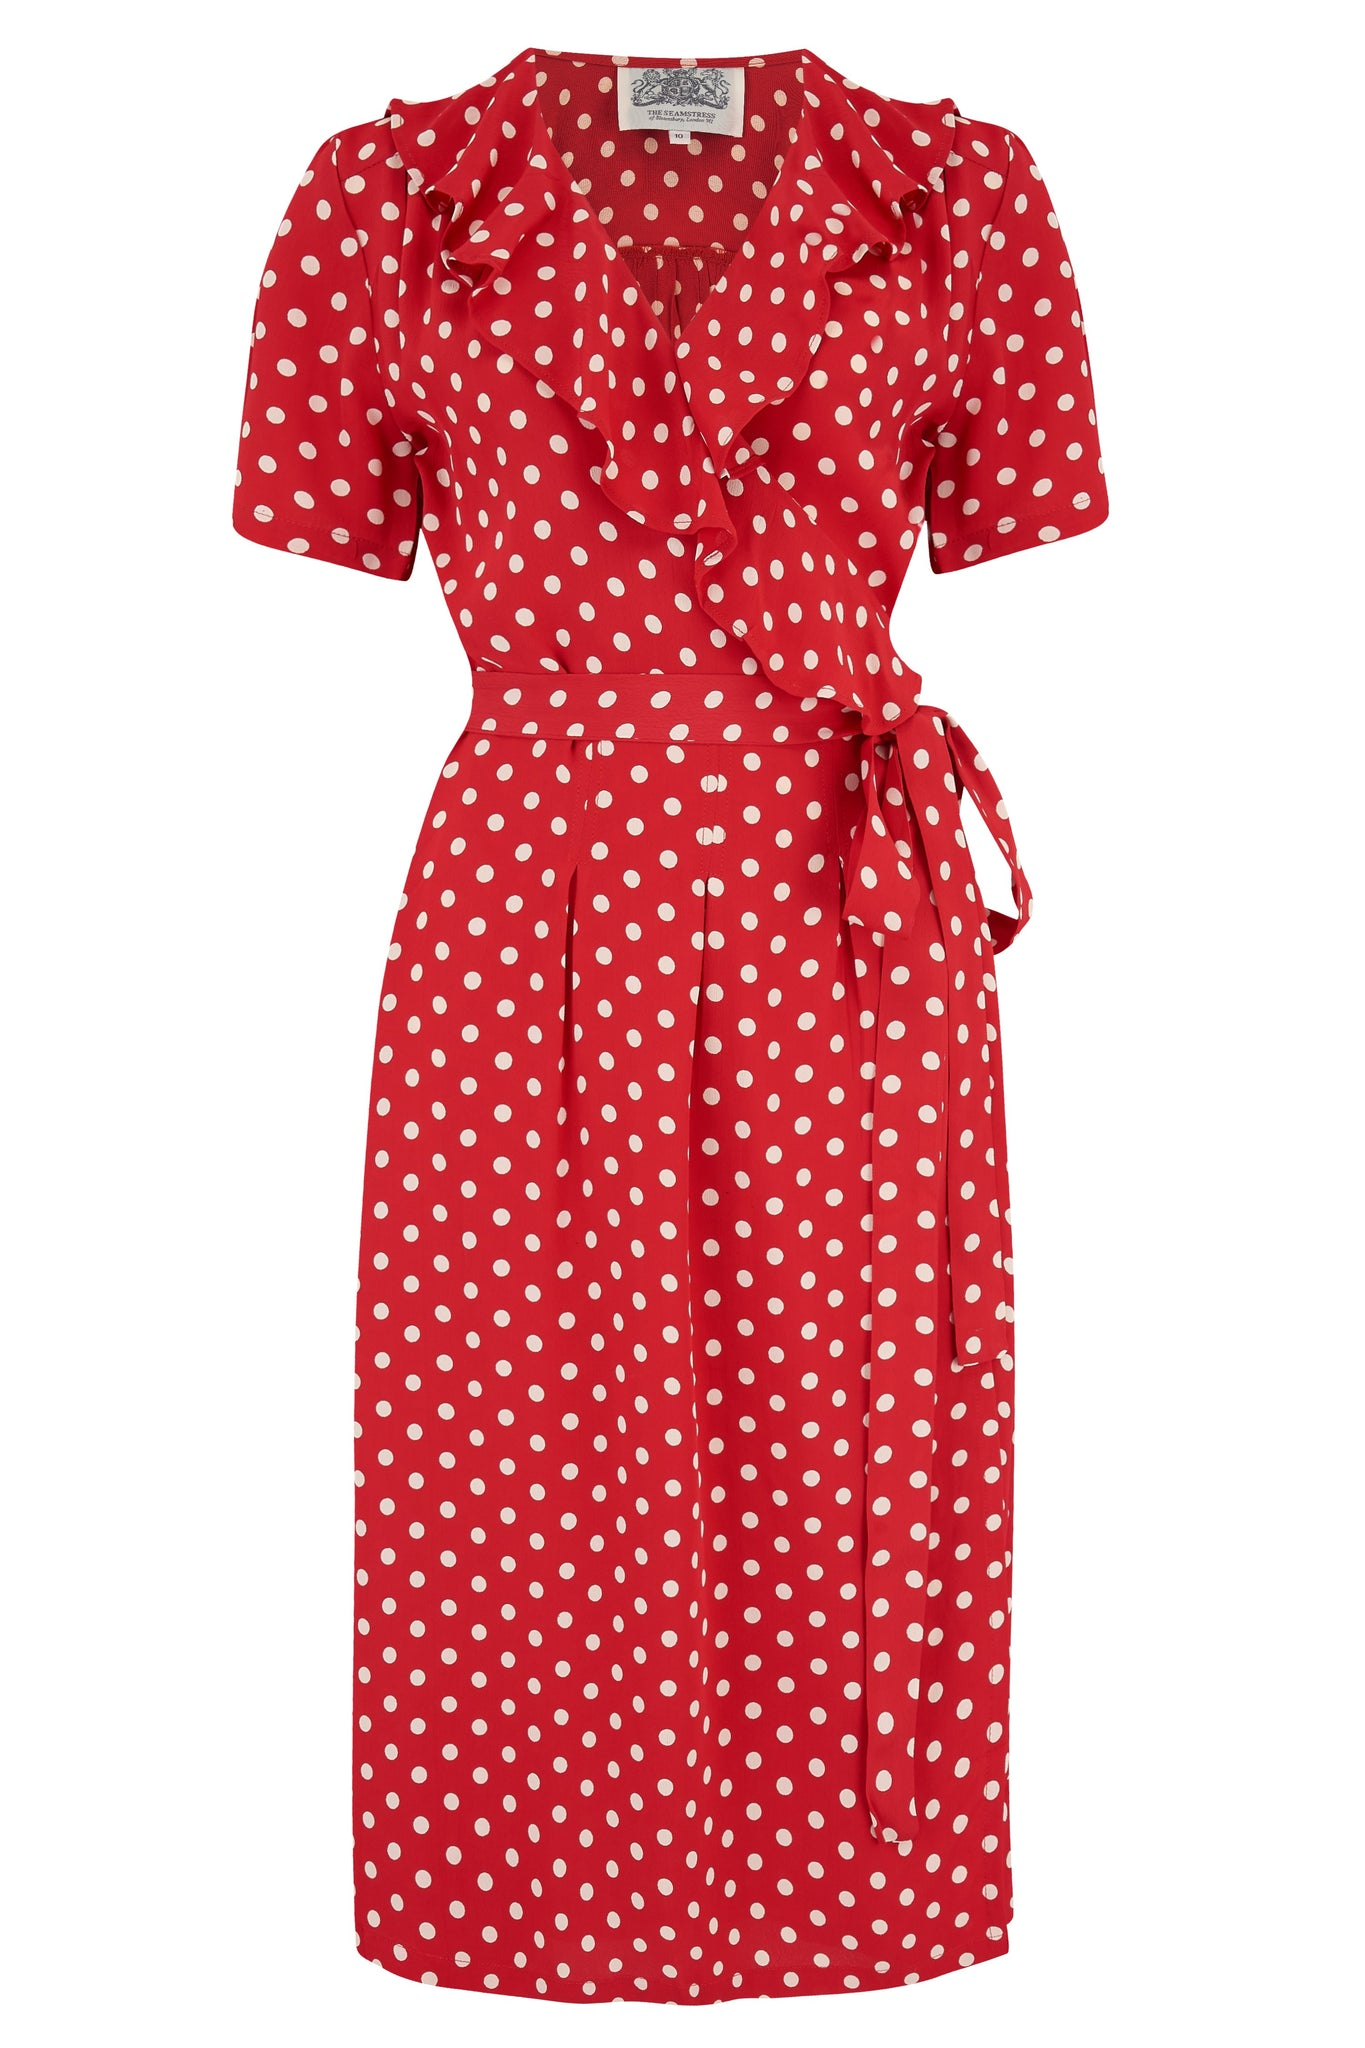 "The Seamstress of Bloomsbury ""Peggy Ruffle"" Wrap Dress In Red with white Polka dot, Classic 1940s True Vintage Style - RocknRomance Clothing"